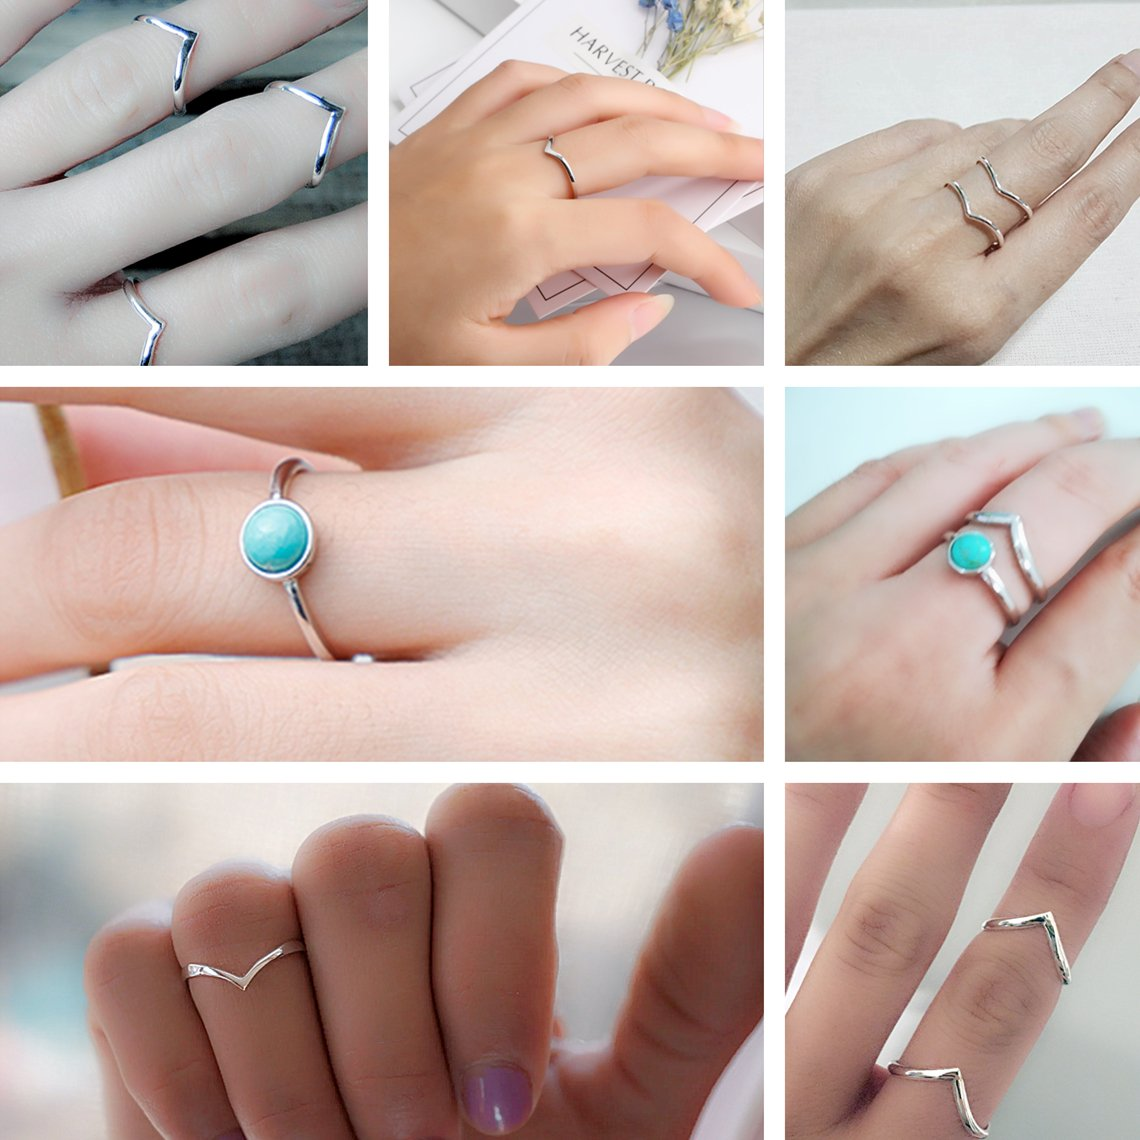 FUNRUN JEWELRY 2 PCS Sterling Silver Stackable Rings for Women Girls Chevron Thumb Turquoise Rings Set High Polish Size 9 by FUNRUN JEWELRY (Image #4)